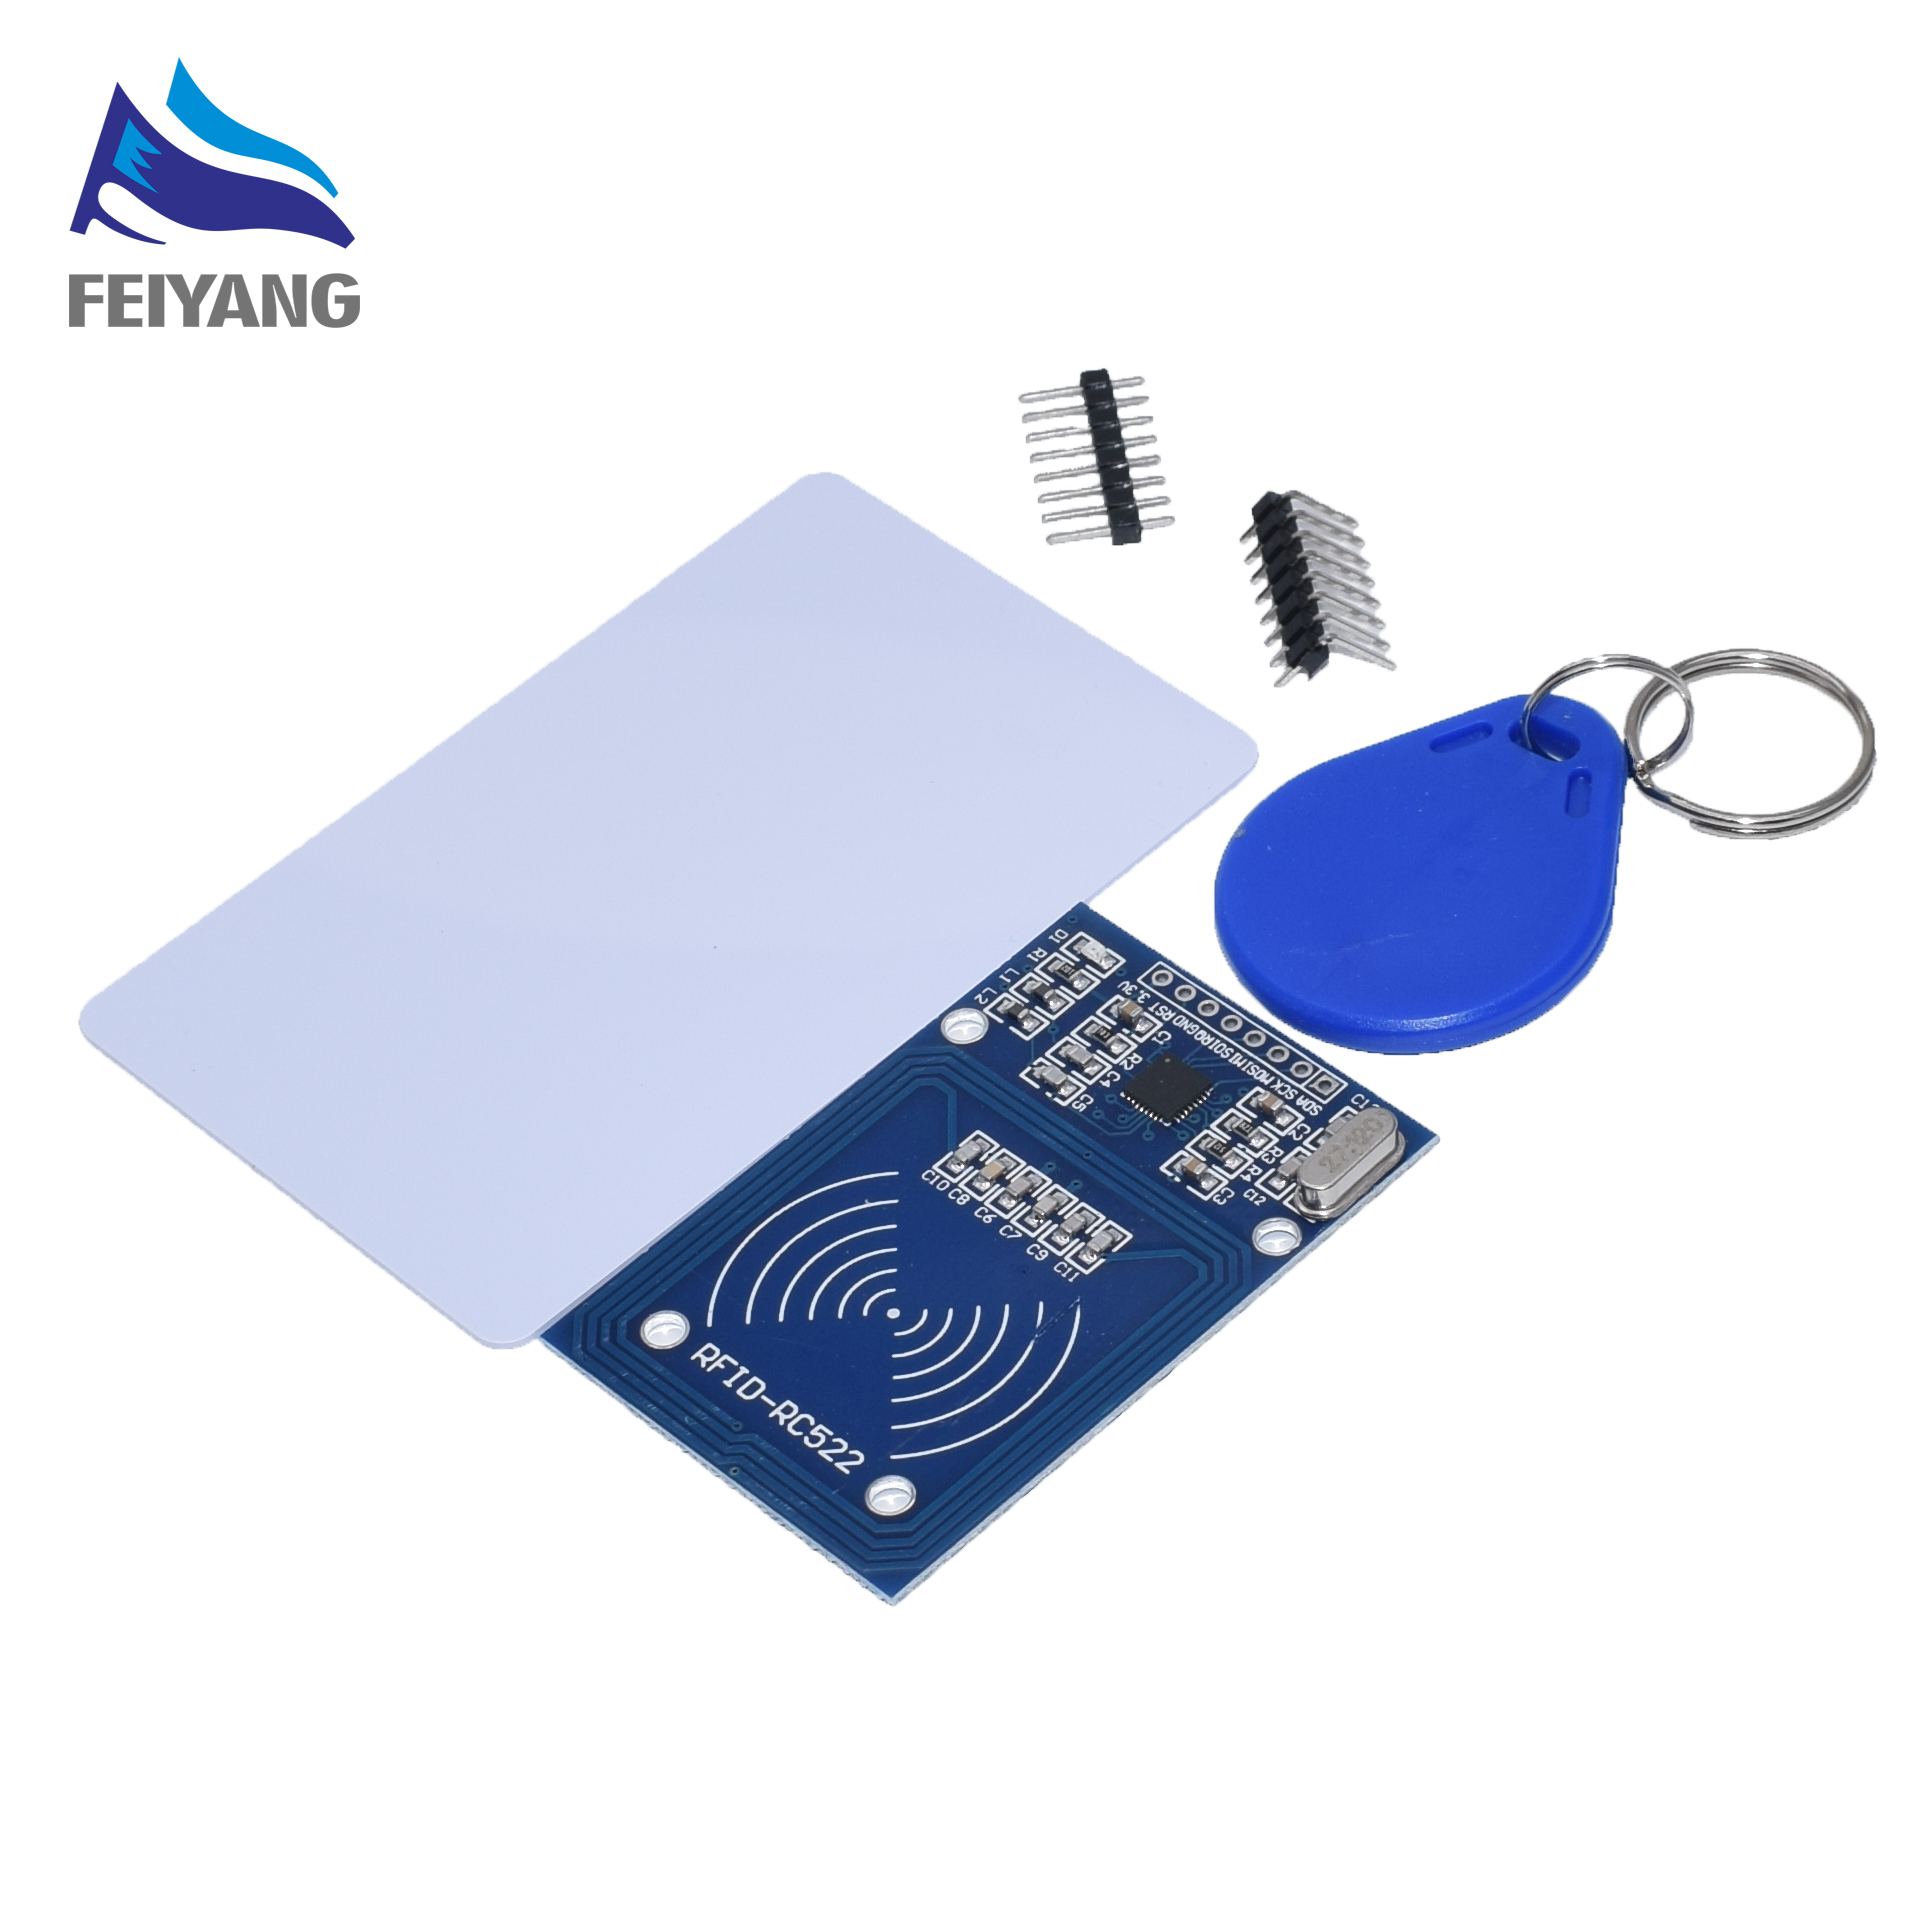 50PCS SAMIORE ROBOT RFID module RC522 Kits 13 56 Mhz 6cm With Tags SPI Write Read